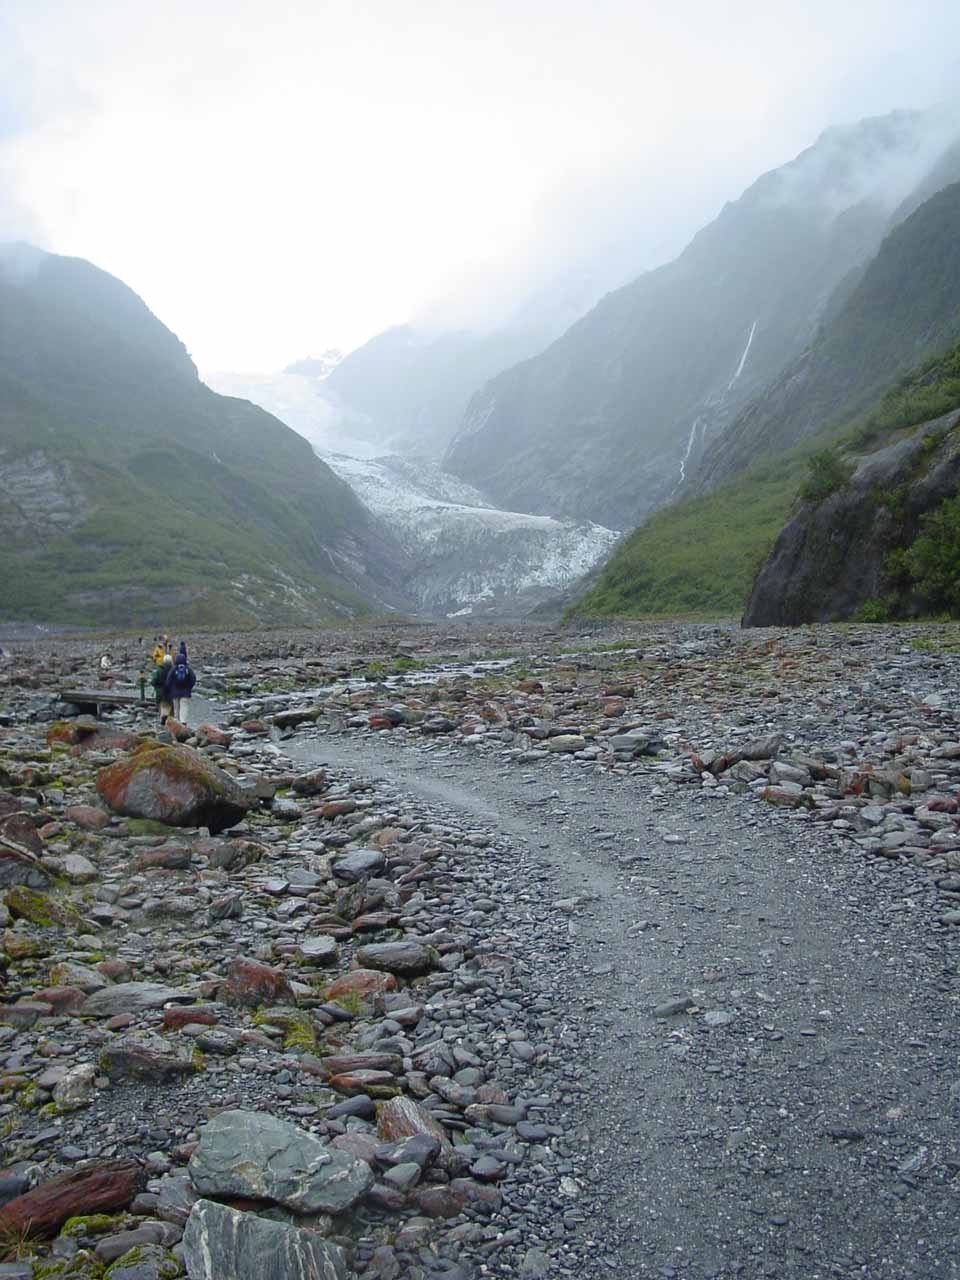 On the trail approaching the terminus of Franz Josef Glacier